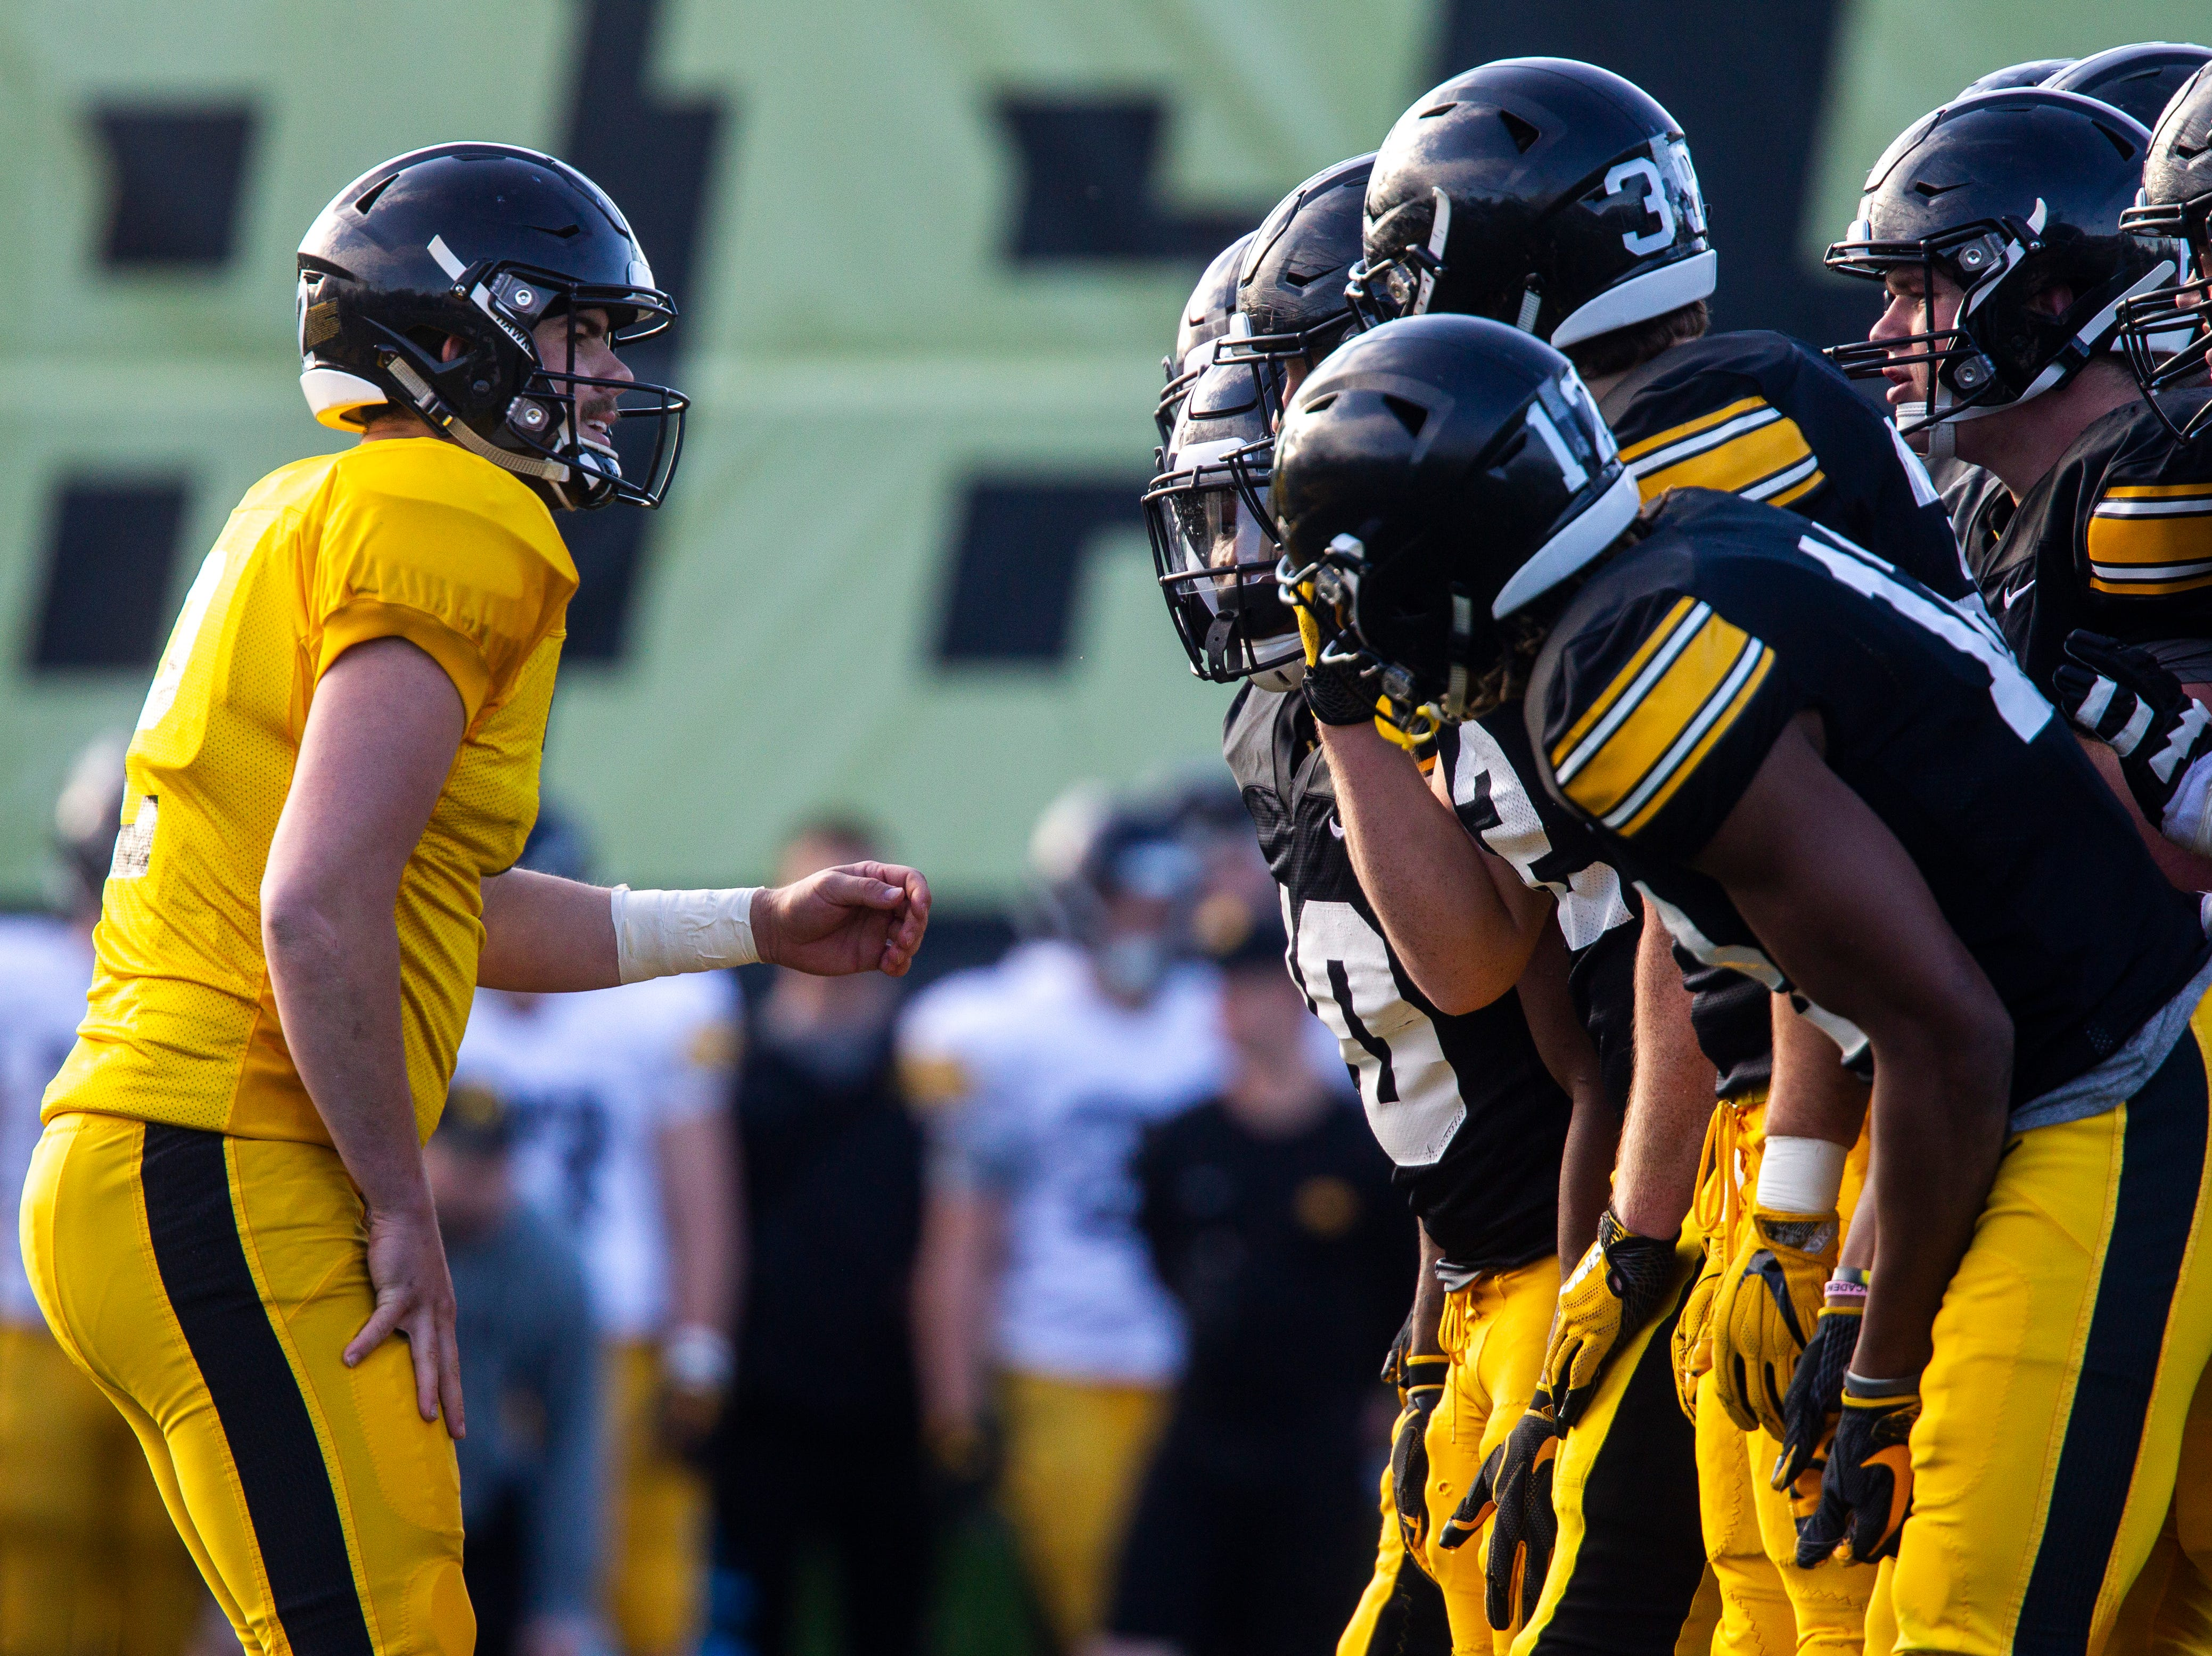 Iowa quarterback Peyton Mansell calls a play as center Tyler Linderbaum and teammates listen in during the final spring football practice, Friday, April 26, 2019, at the University of Iowa outdoor practice facility in Iowa City, Iowa.